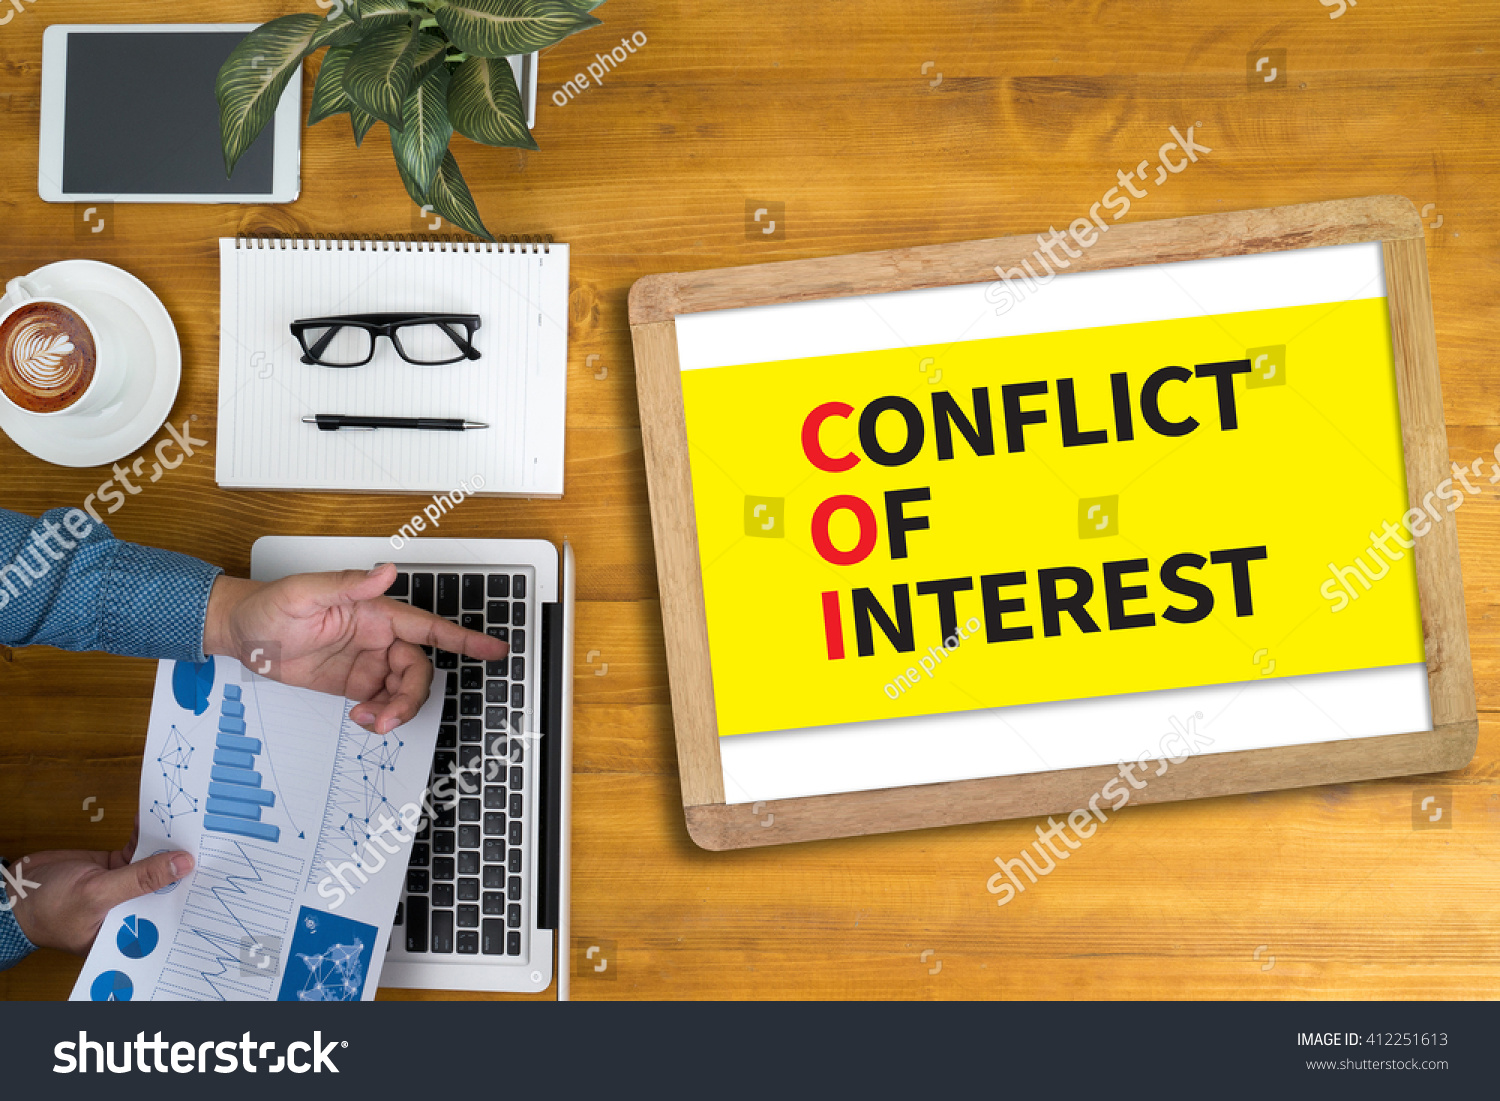 the conflicting interests of a working These are some examples of conflicts of interest at work prevention is the best cure for most problems consider what you do at work, and what you do that is related to your work, that might make other people think that you might be acting, or tempted to act, against your employer's interests.